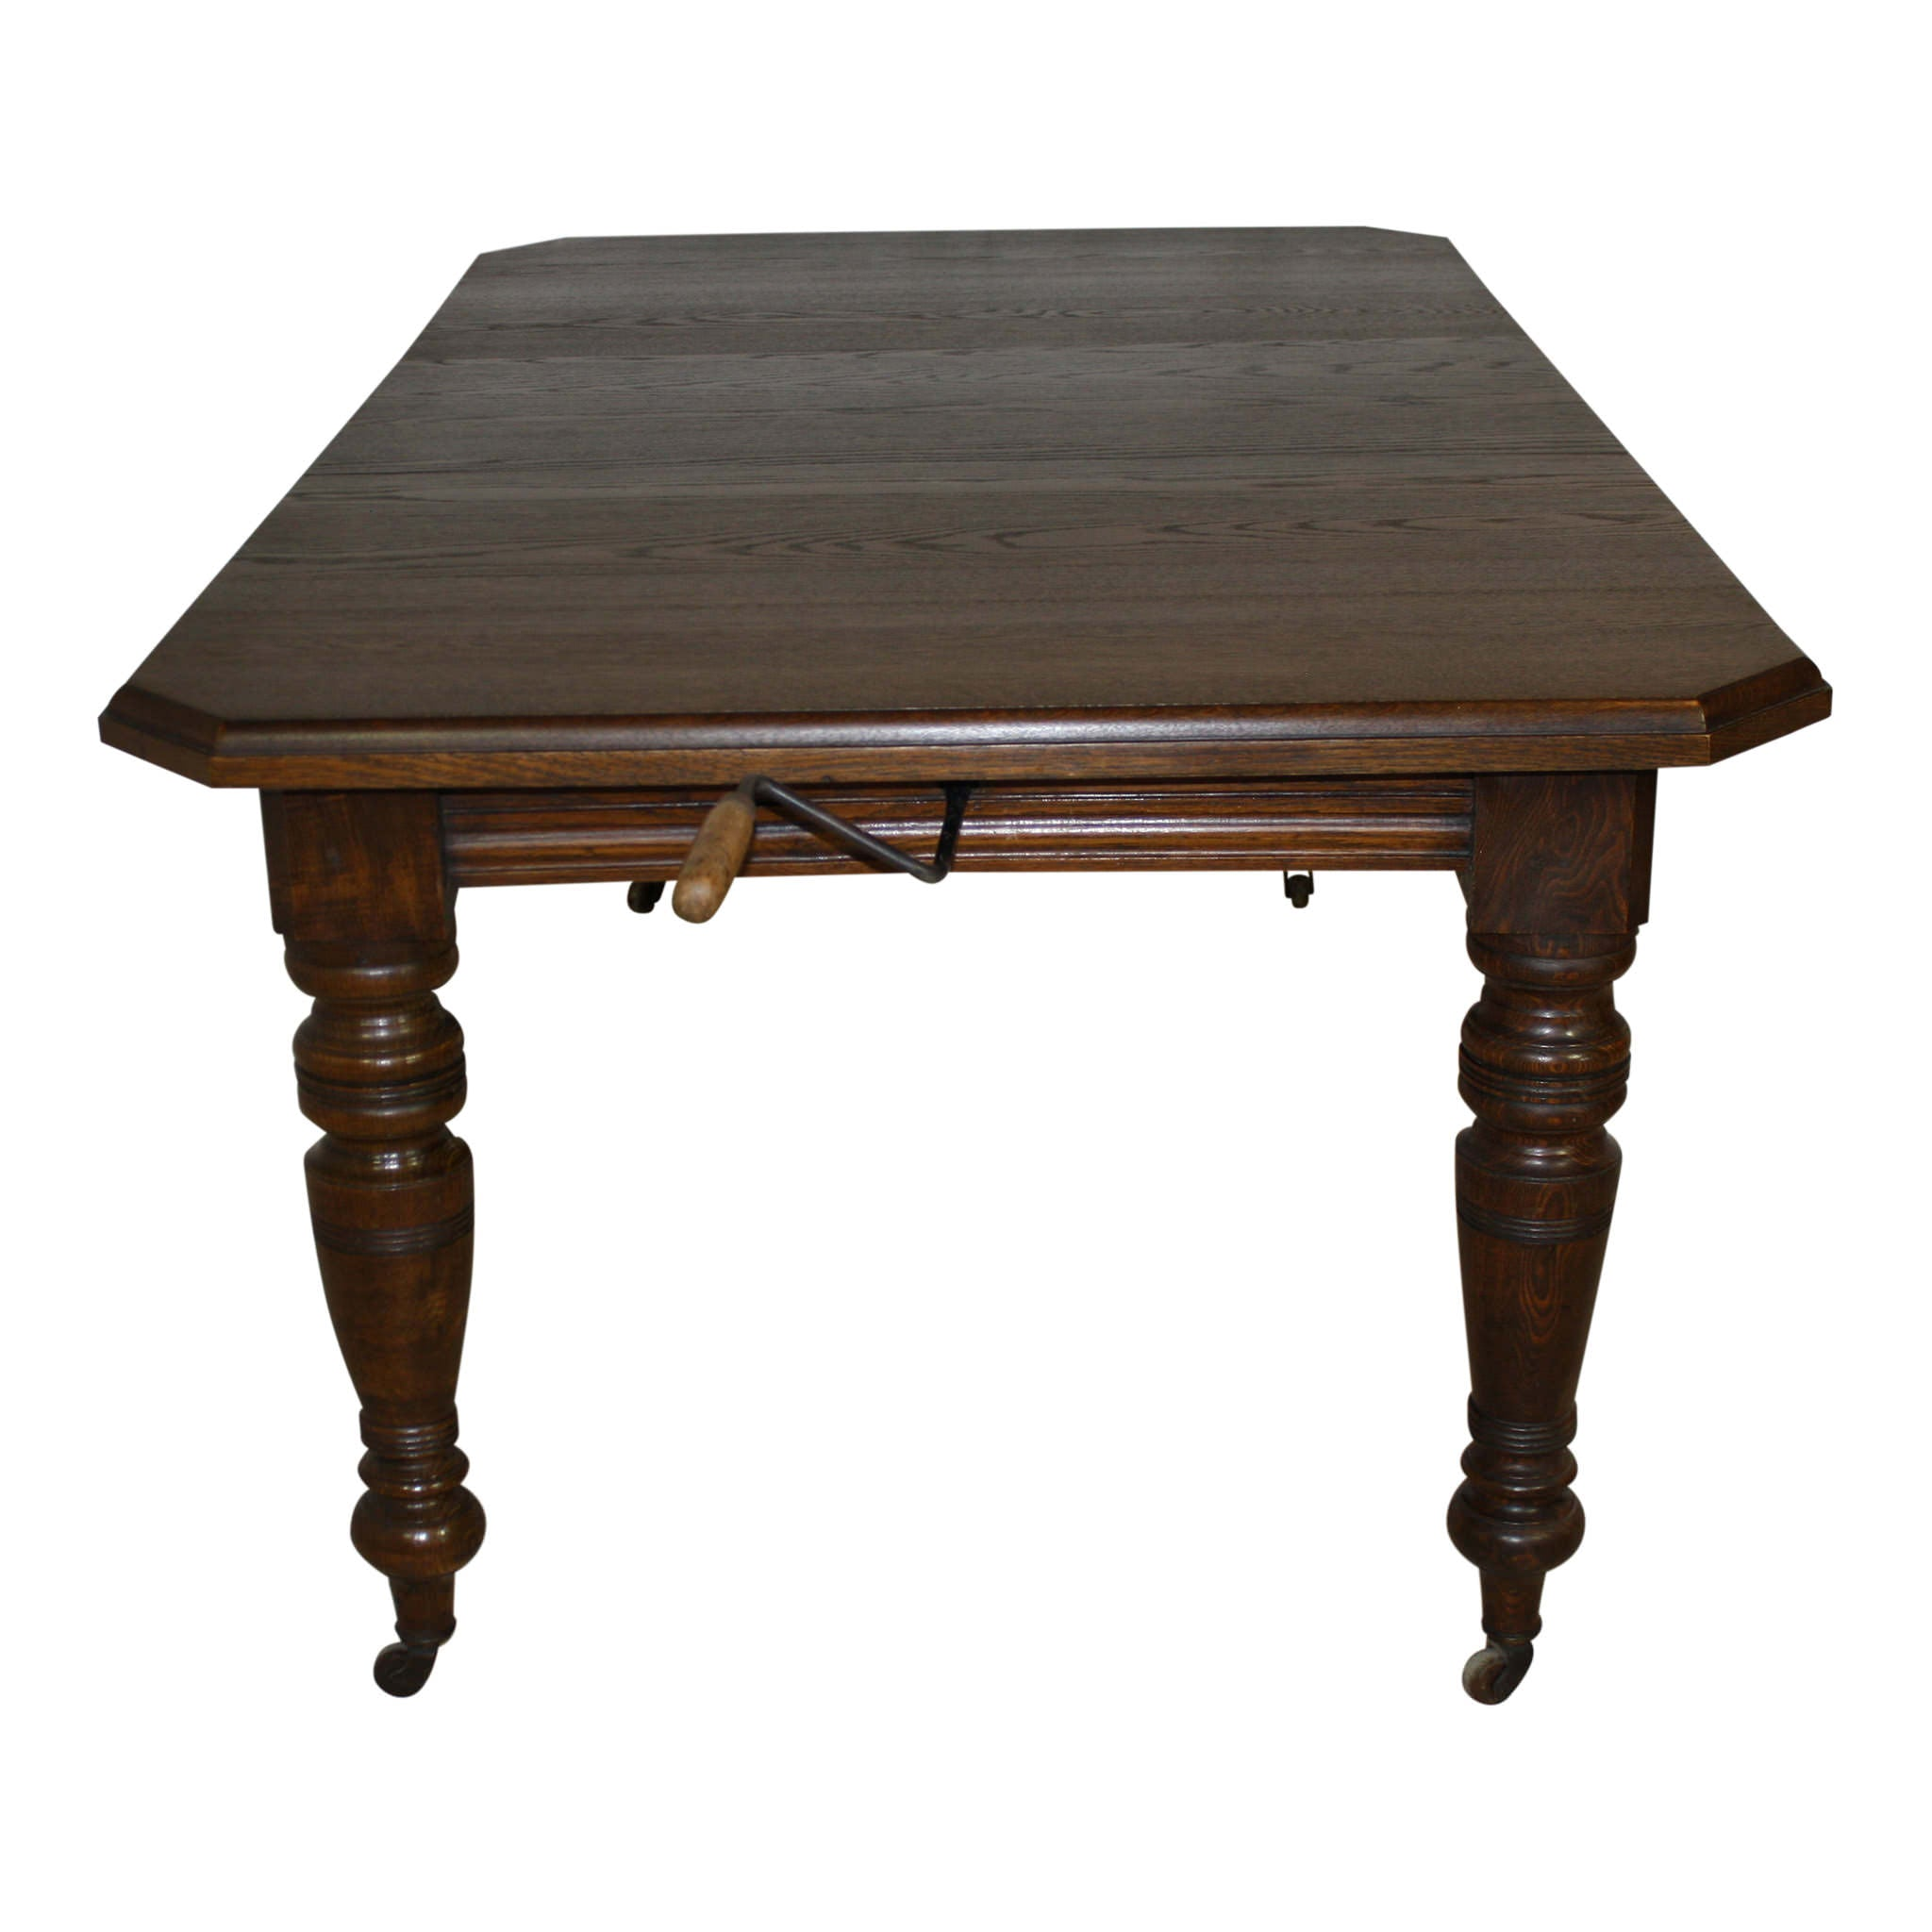 English Edwardian Table with Crank and Leaf